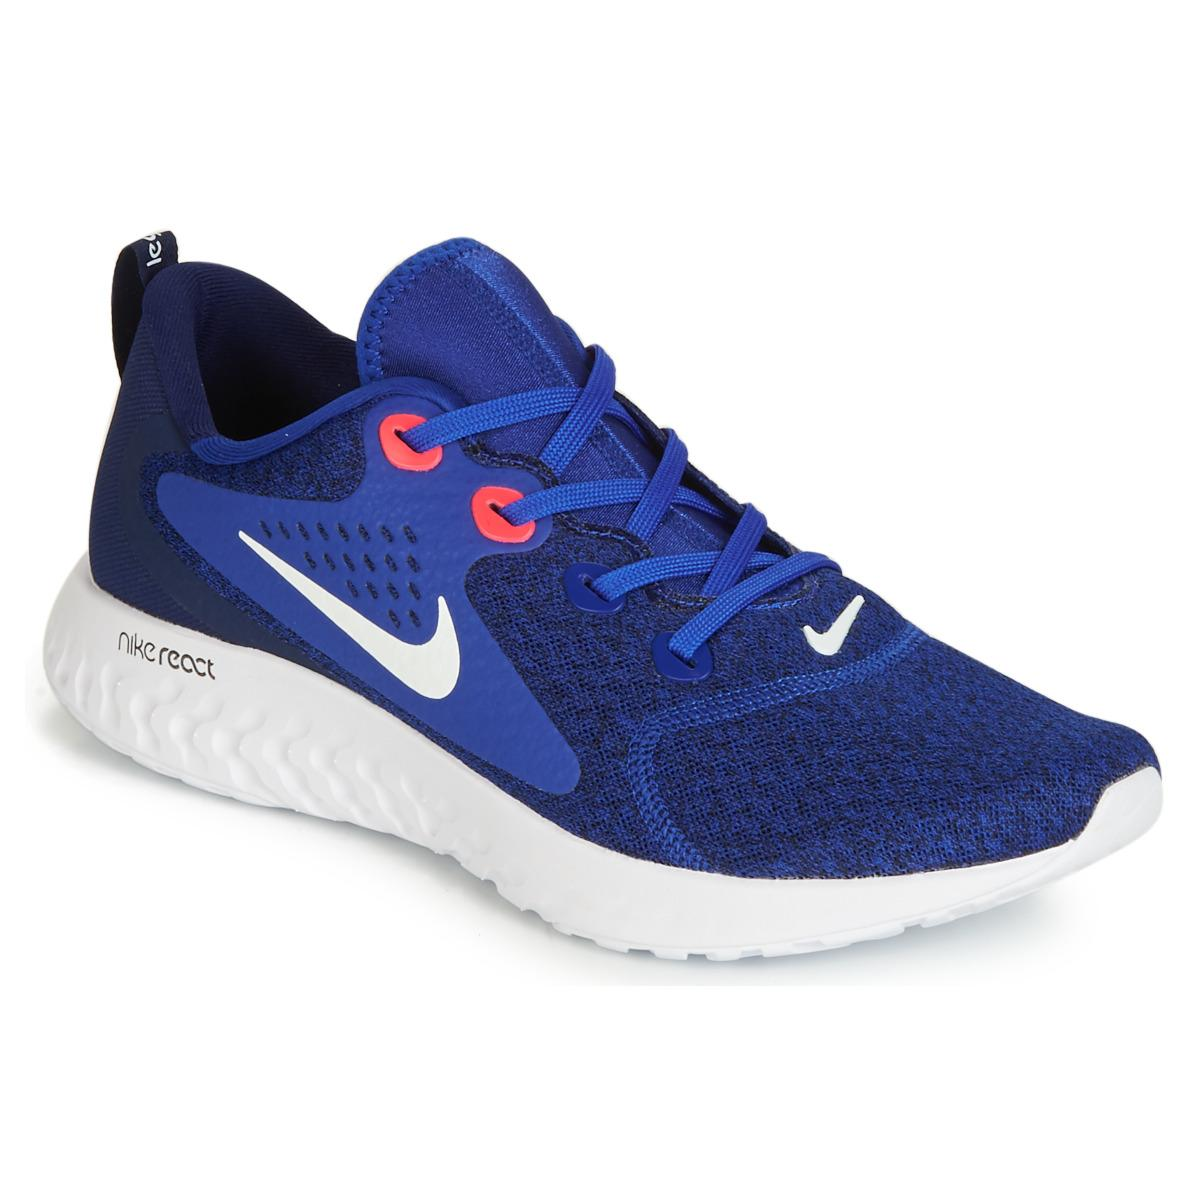 100% authentic cd940 56d9b Nike Rebel React Men s Running Trainers In Blue in Blue for Men - Lyst